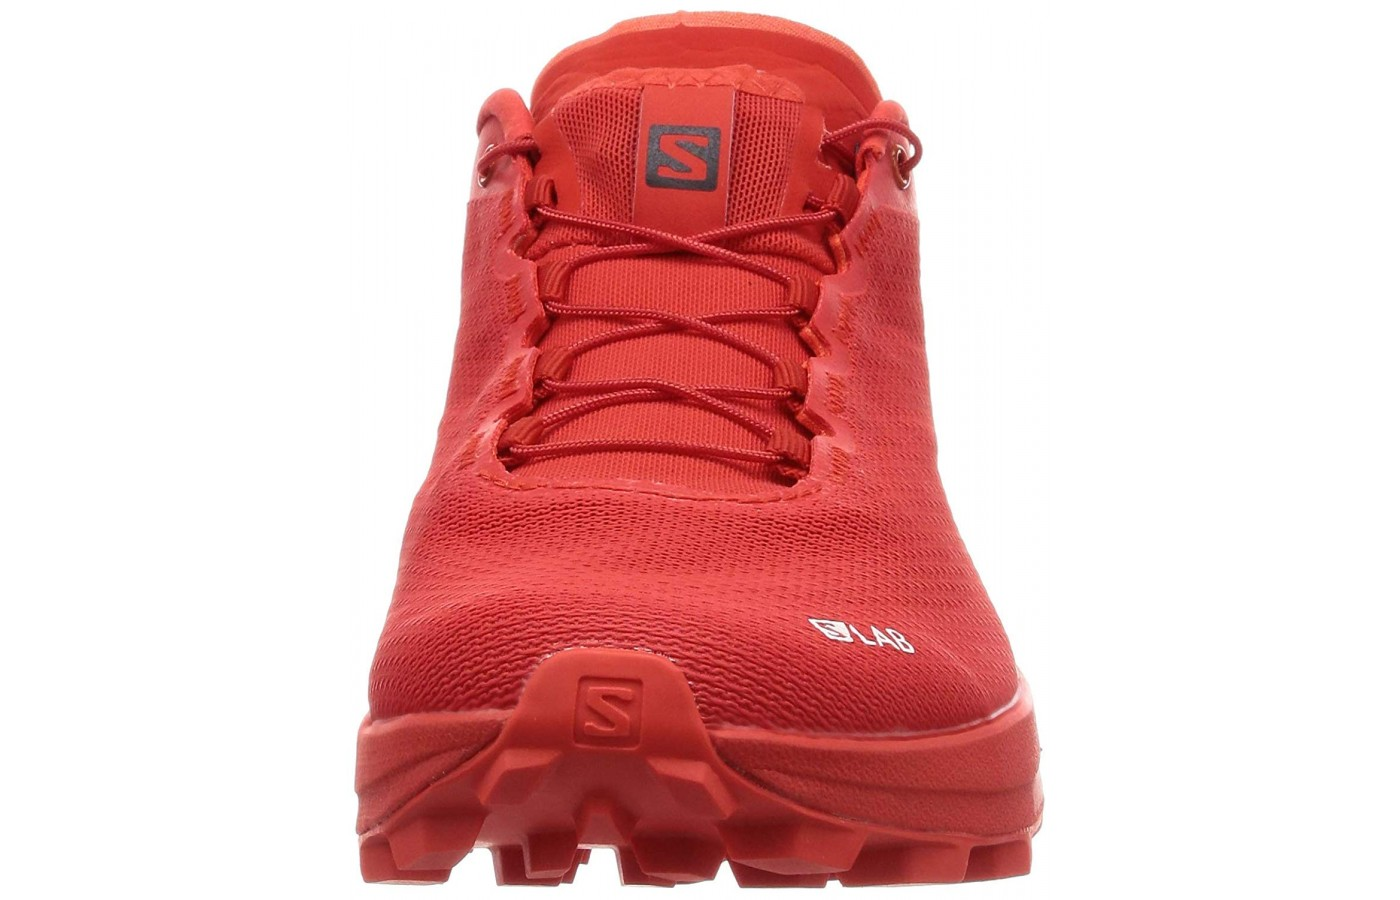 The Salomon Sense 7 shoes are highly durable.